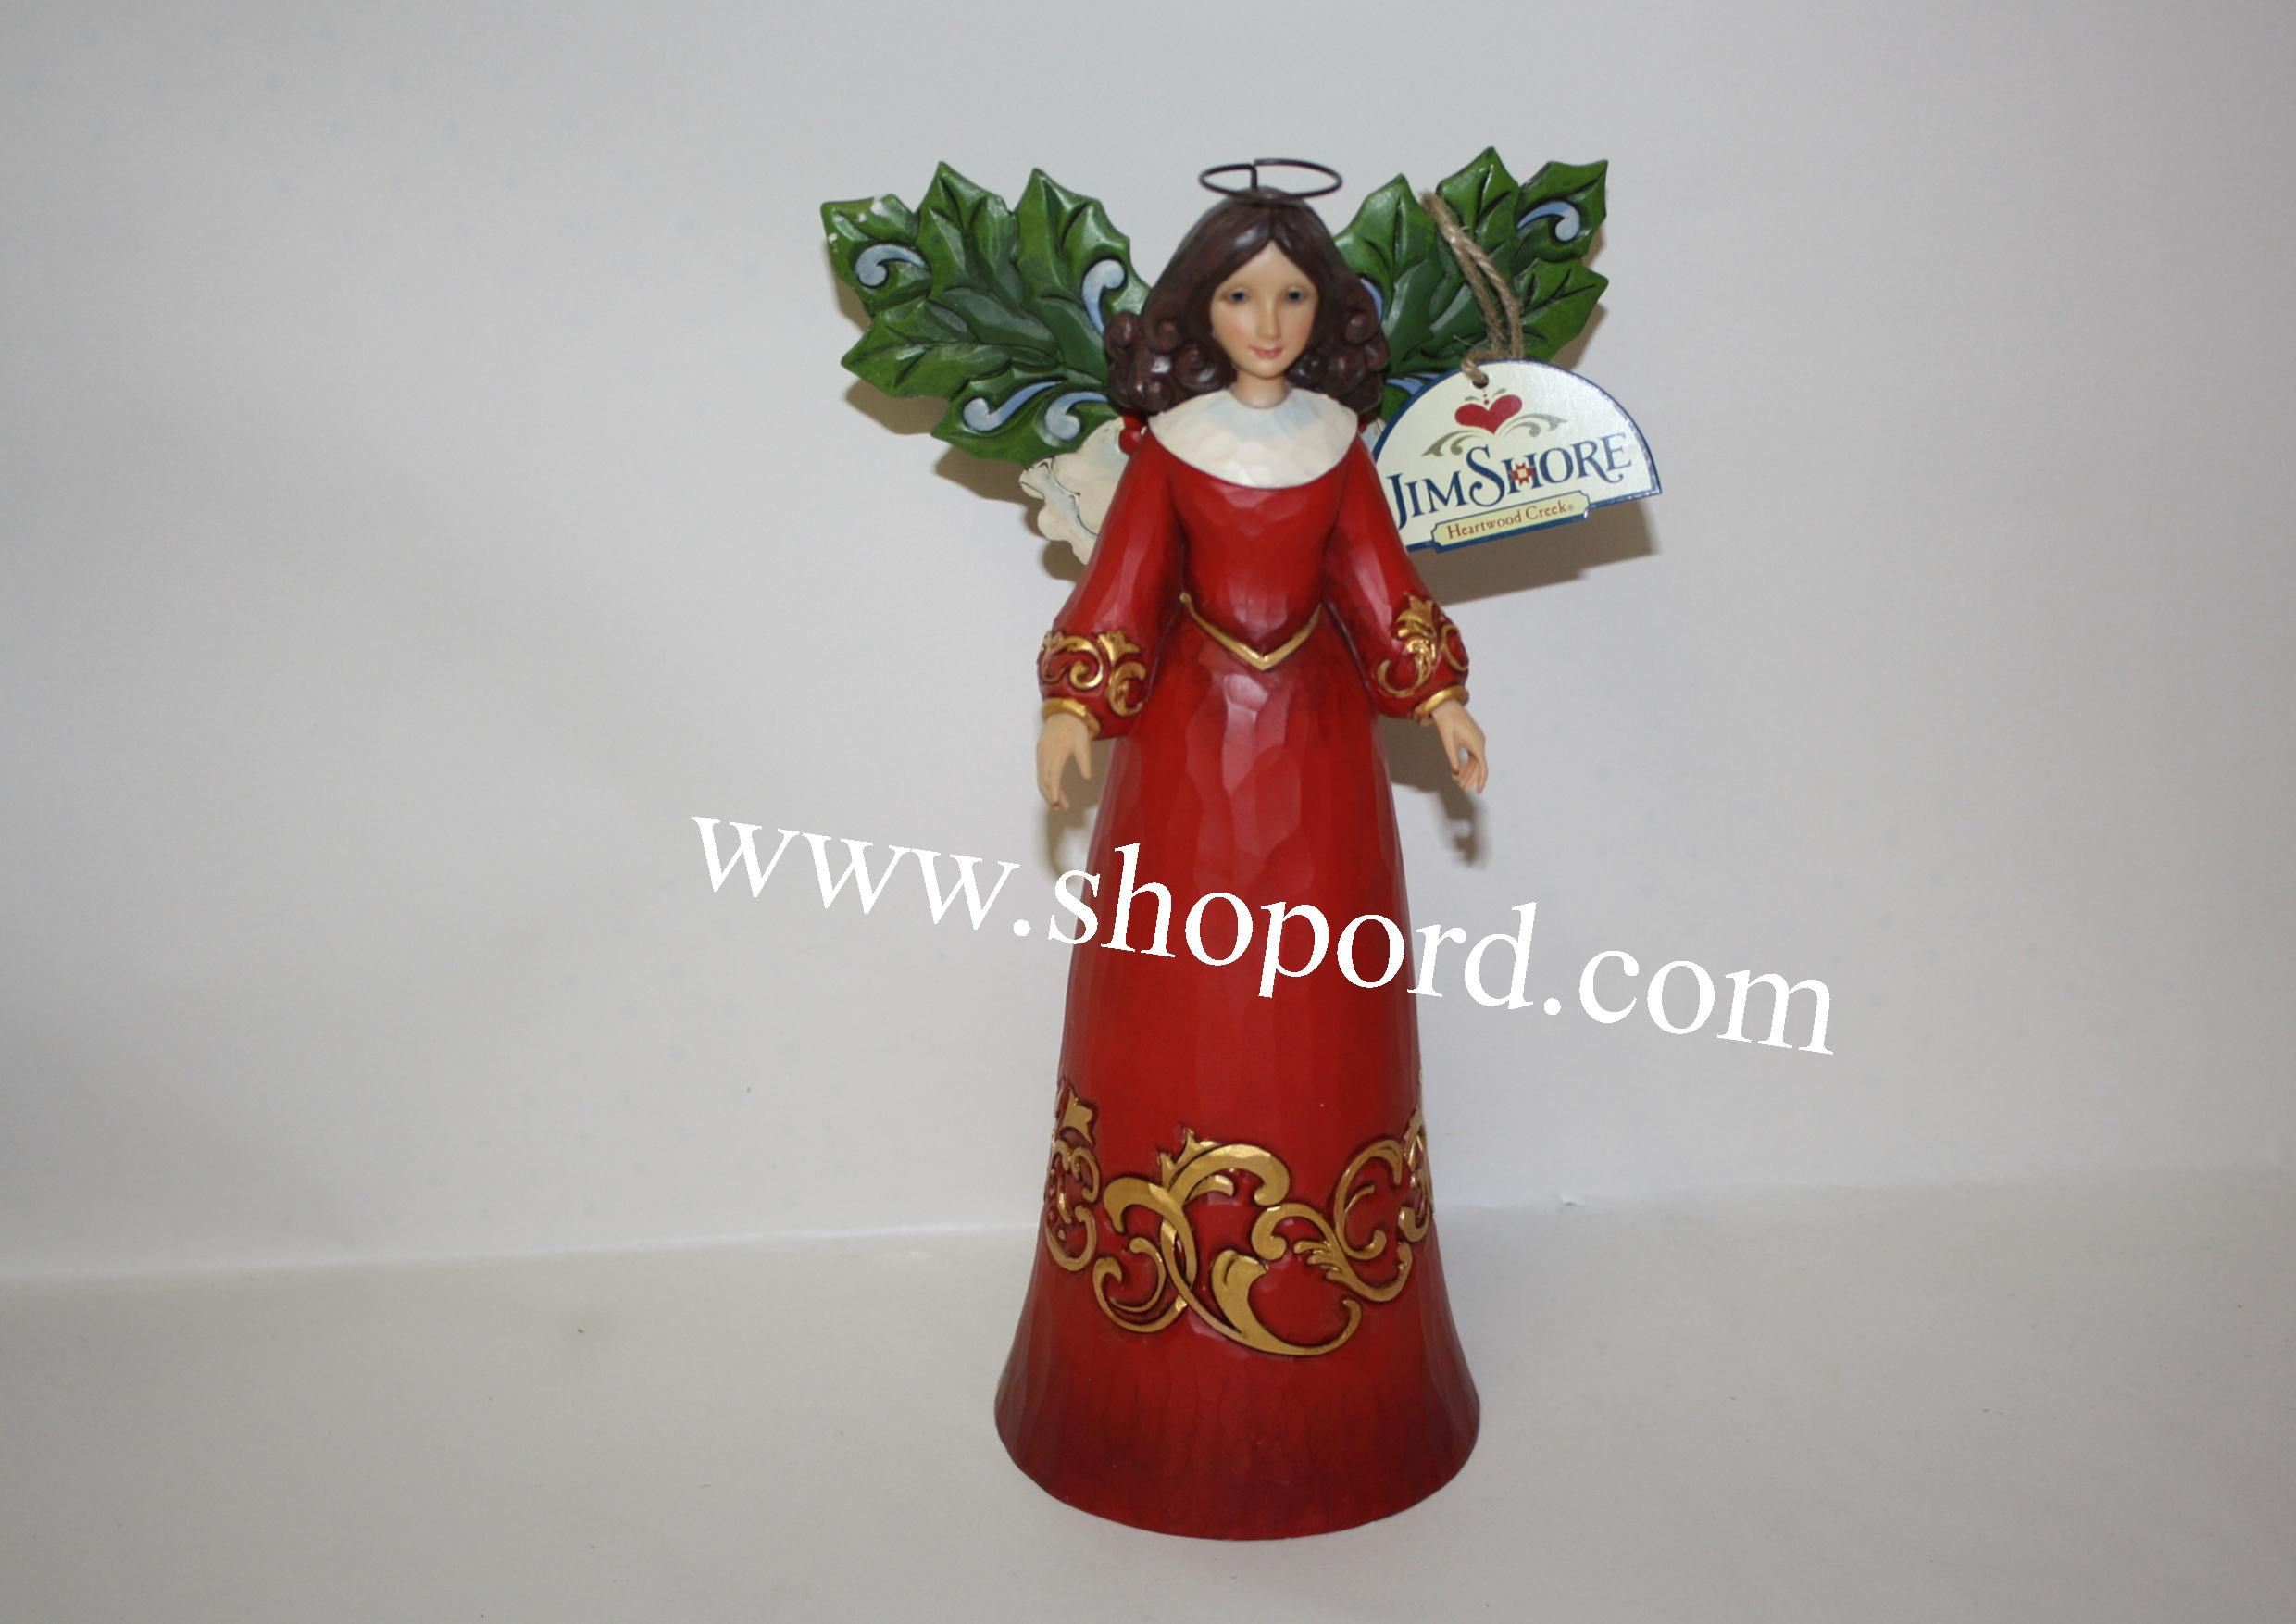 Jim Shore Fresh And Festive Angel With Holly Leaf Wings Figurine 4053719